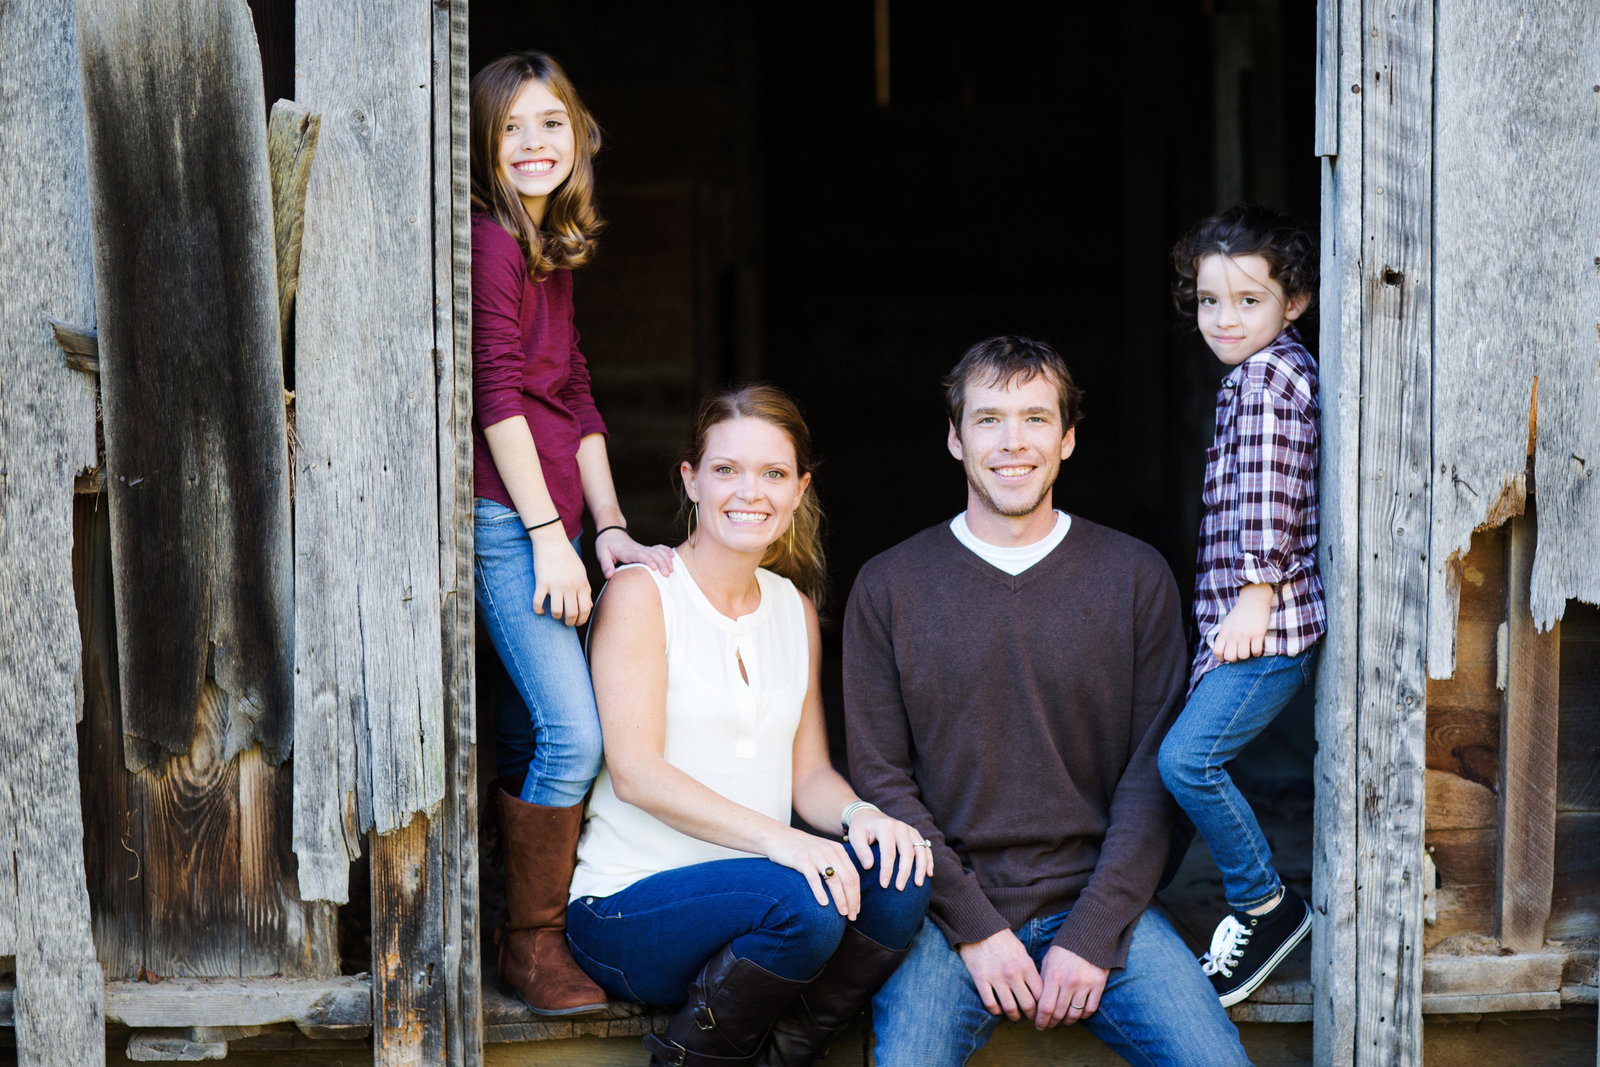 family children portrait skyryder engagement wedding photography blacksburg roanoke charlottesville lexington radford-071